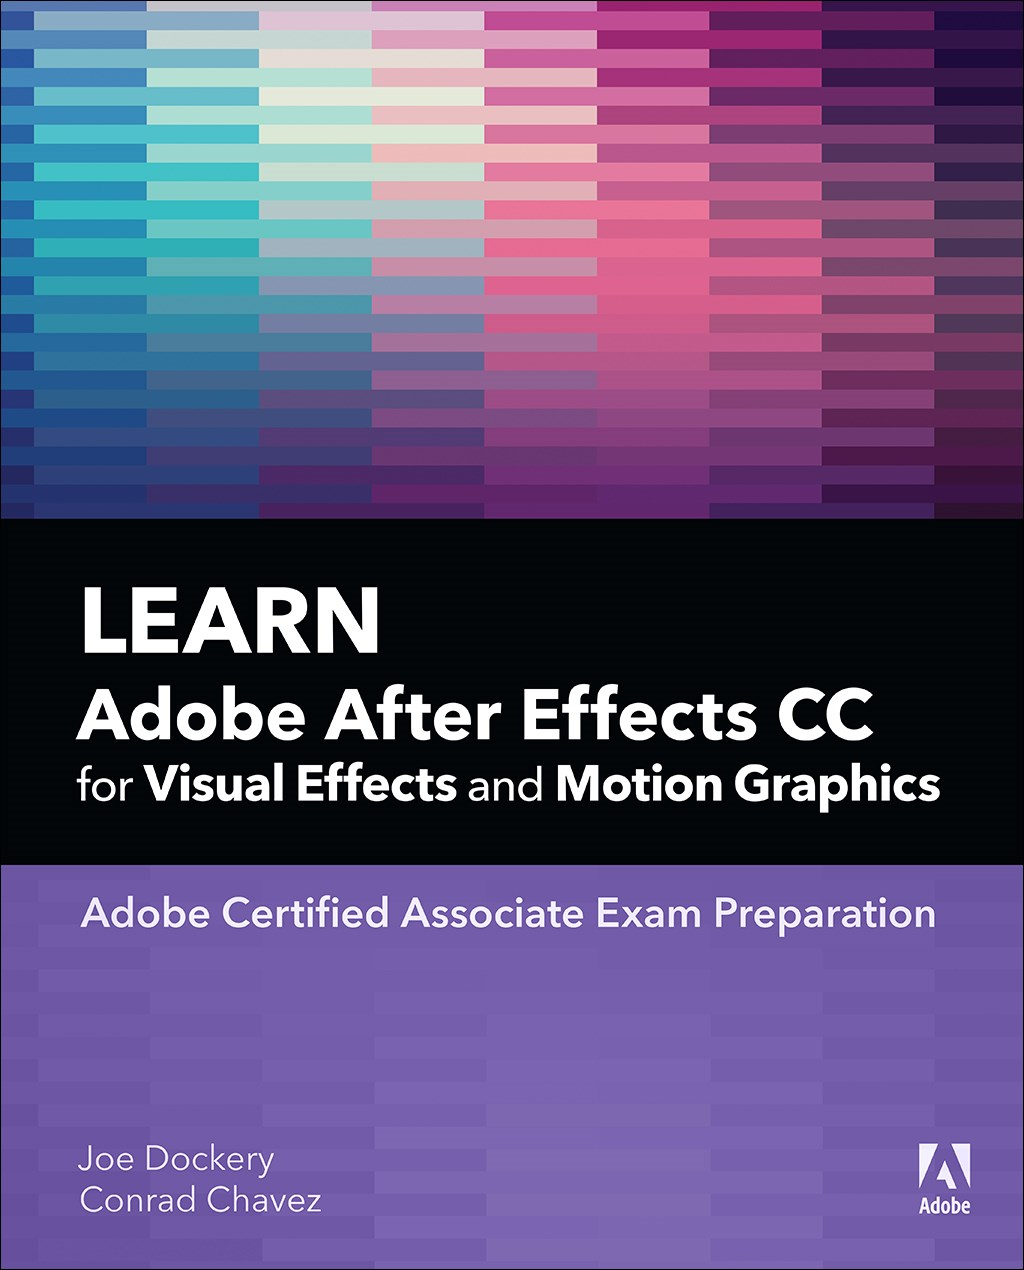 Learn Adobe After Effects CC for Visual Effects and Motion Graphics